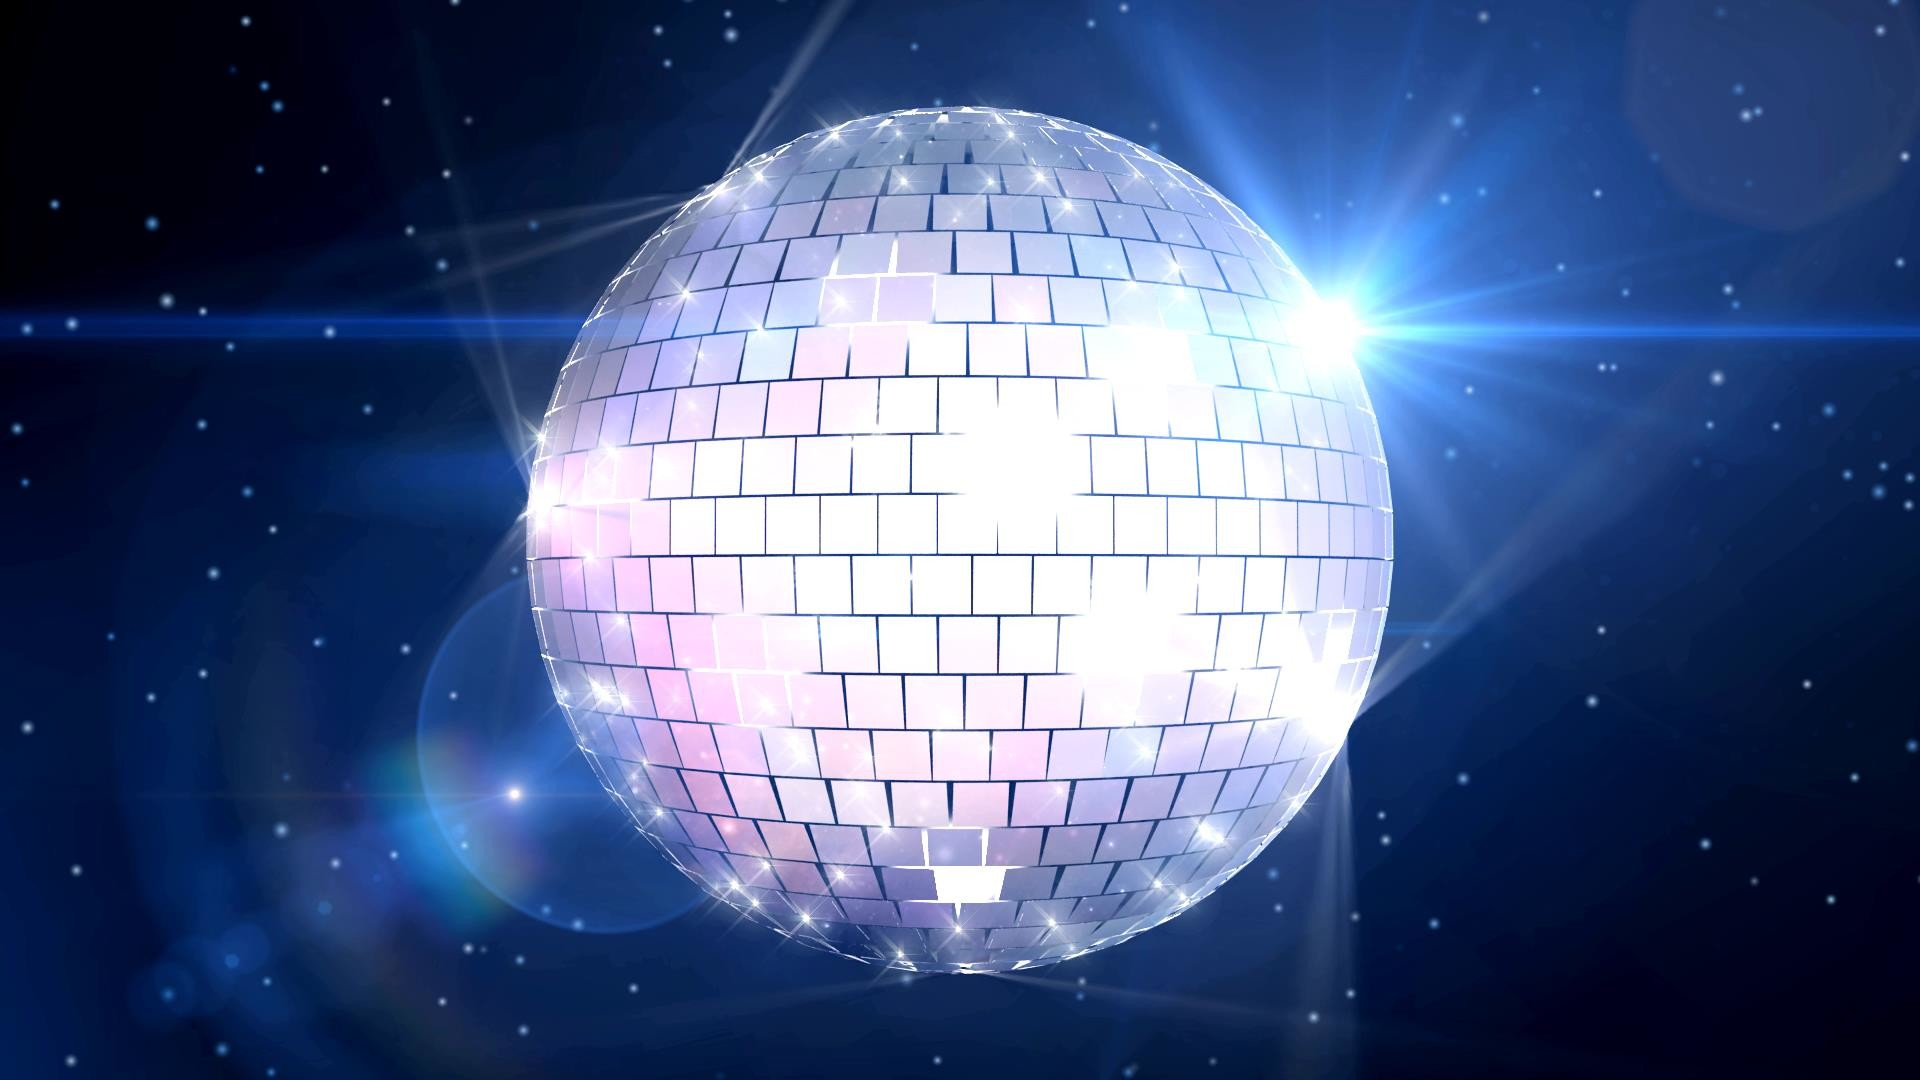 Disco Ball Wallpaper 183 ① Wallpapertag